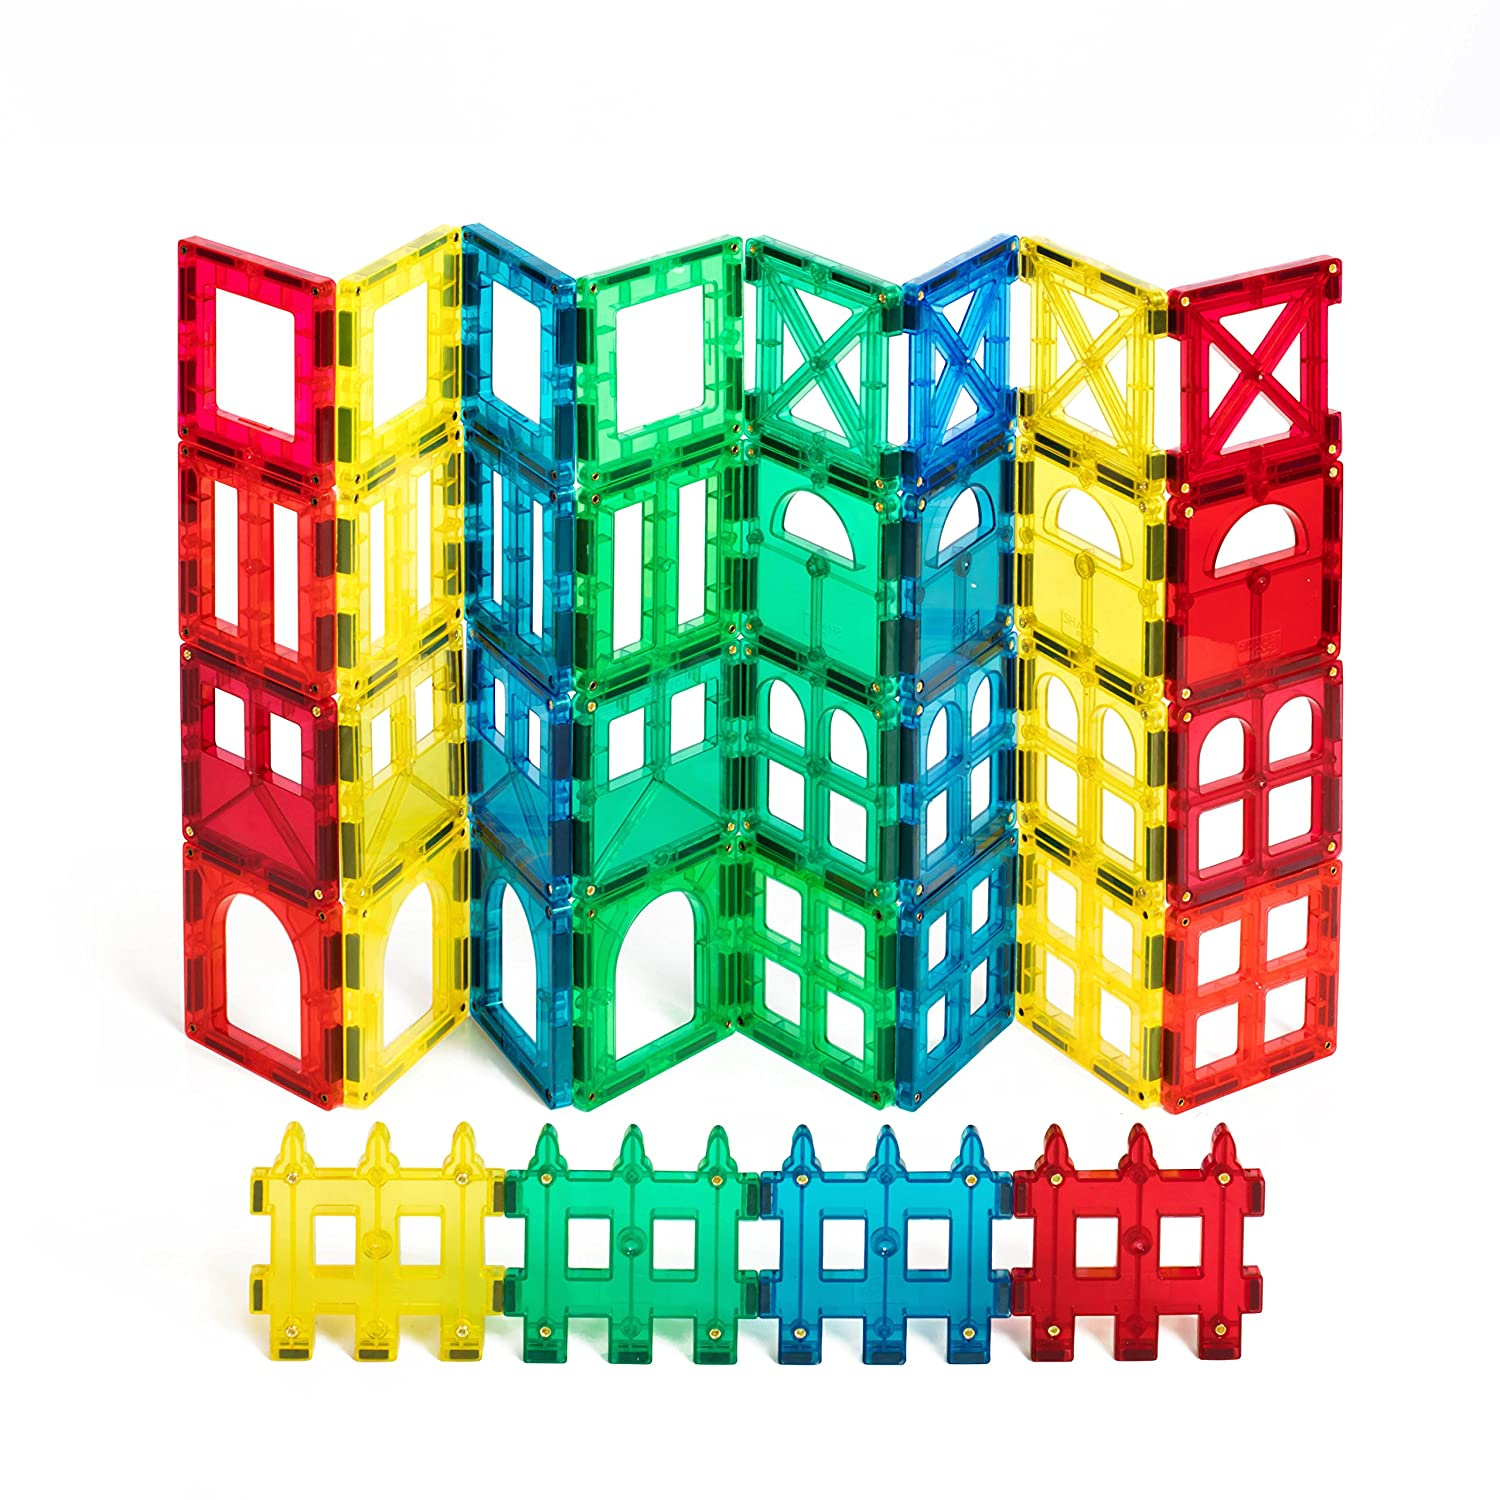 Award Winning Shape Mags 36 pieces Clear transperent colors JUST 3x3 SQUARES 9 Different Designs, Compatible With Magna Tiles and other brands Review